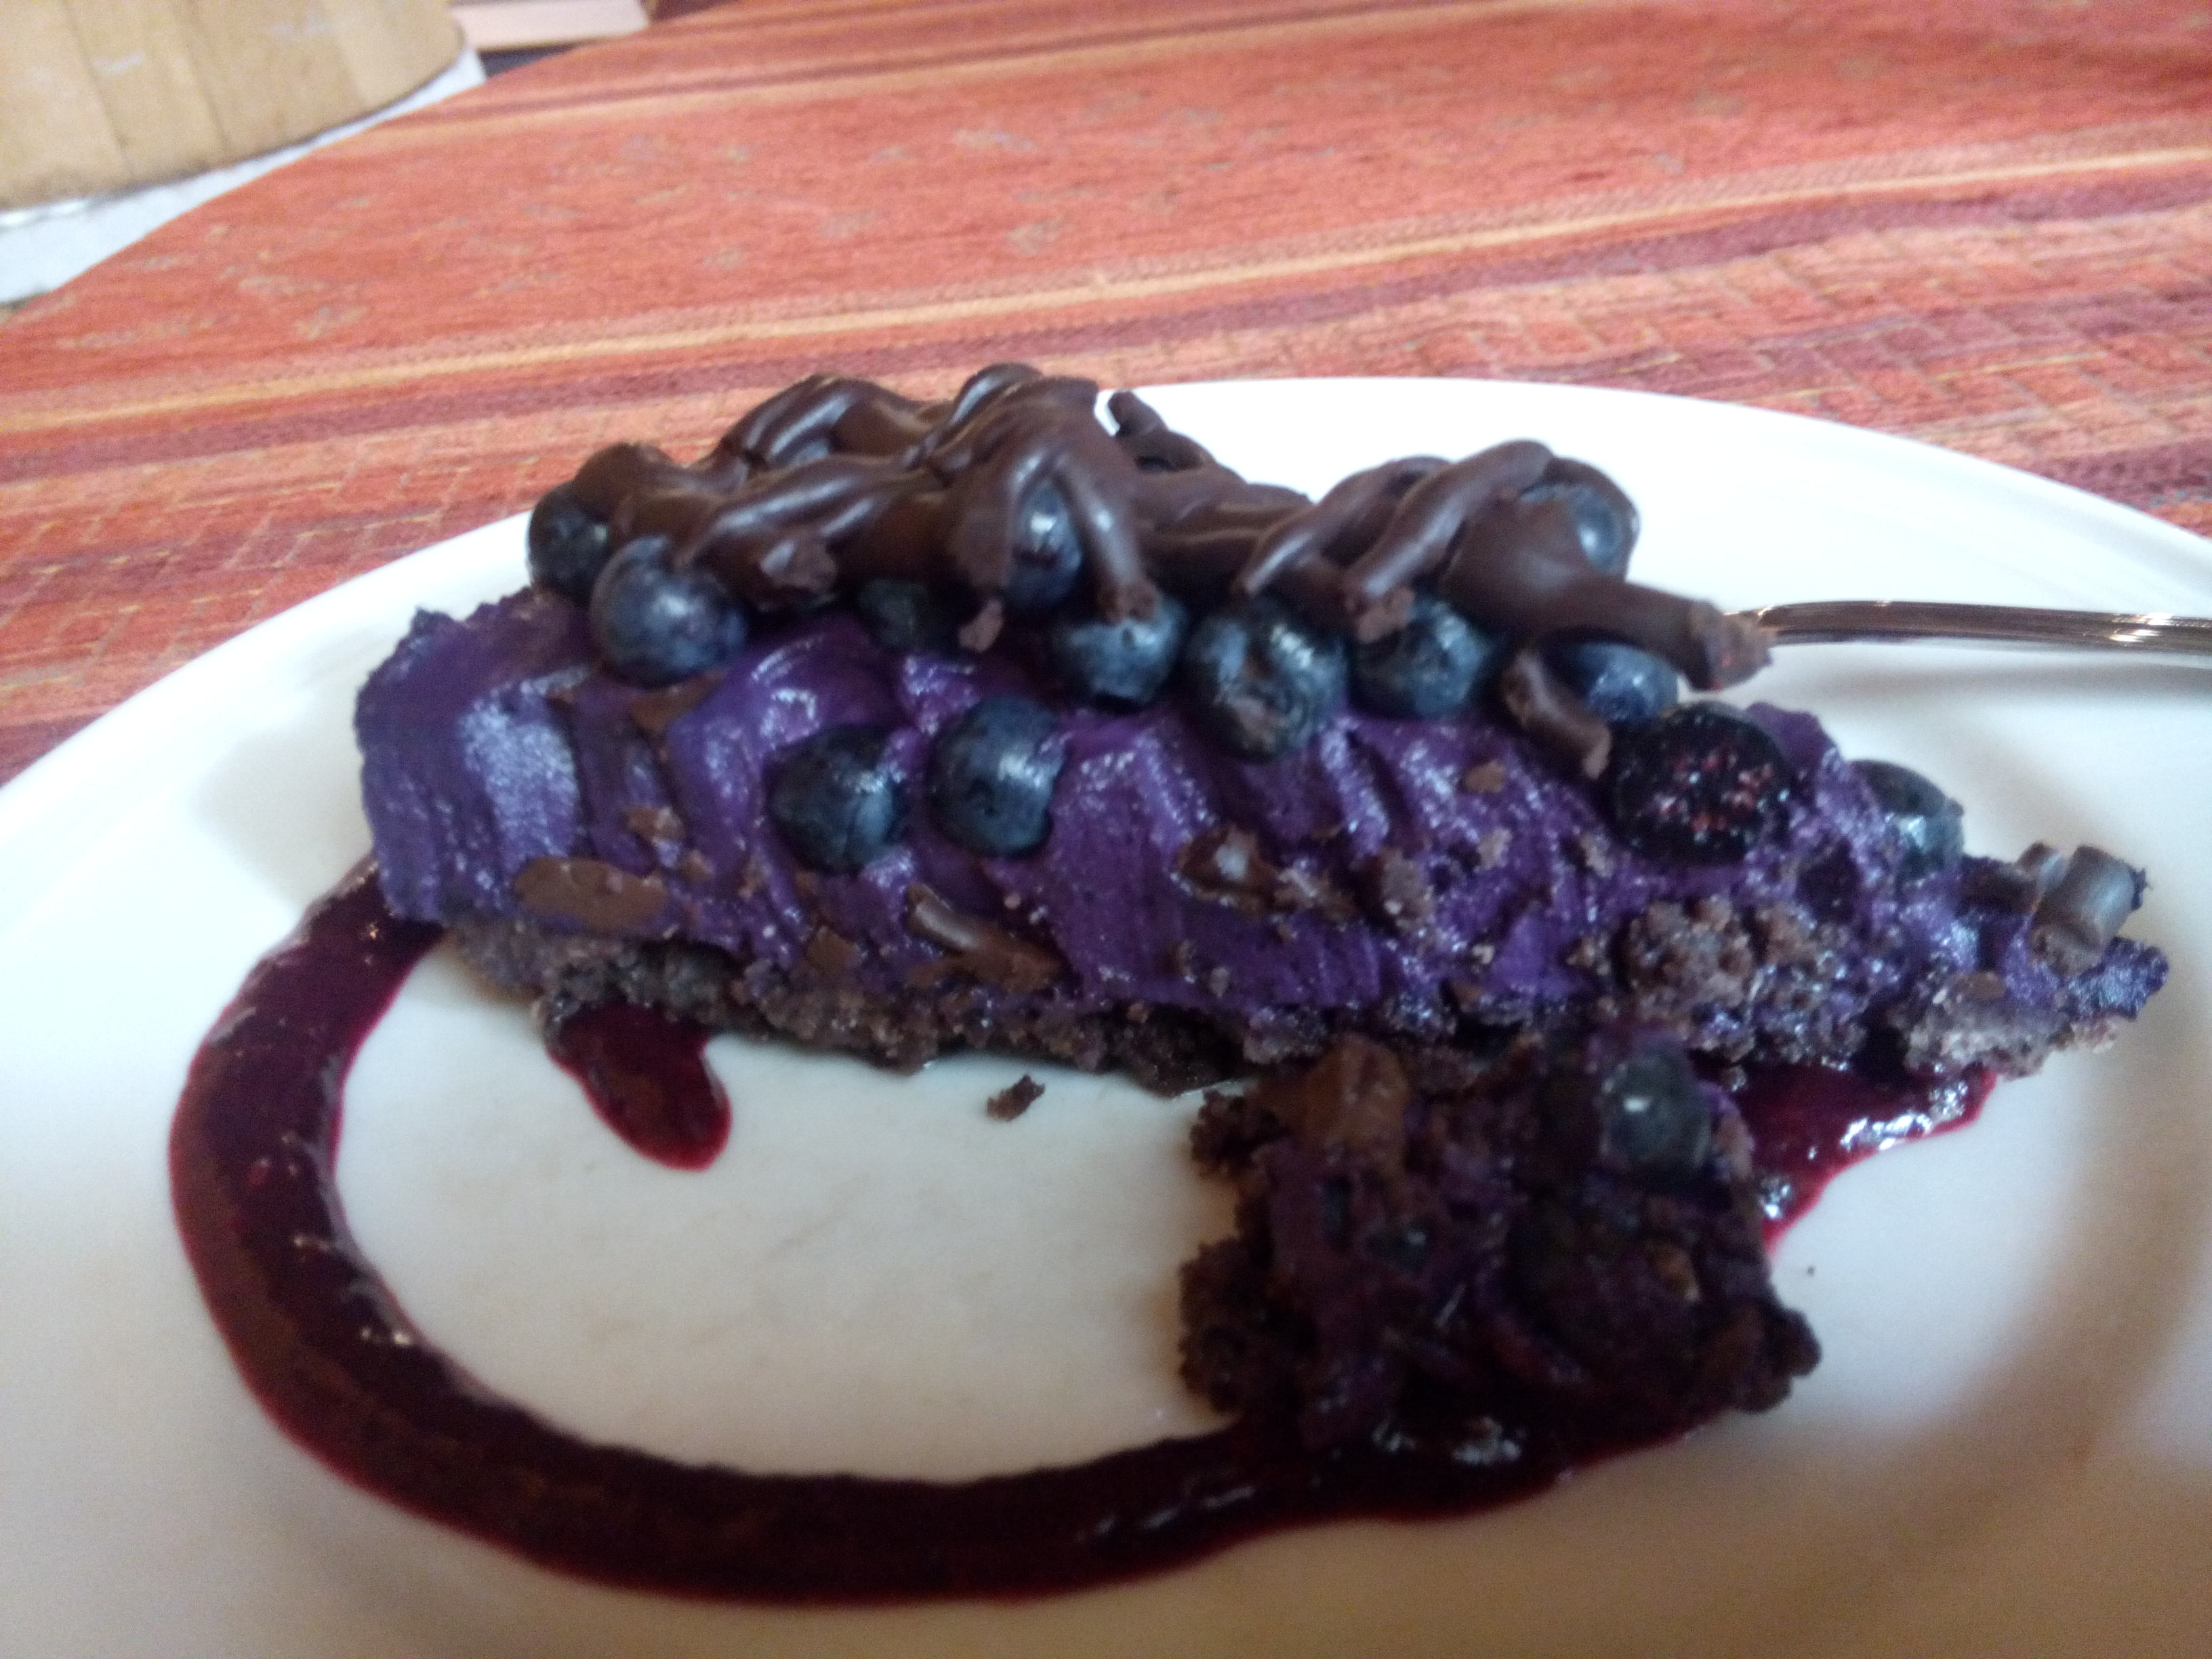 A purple and chocolate cake on a white plate with pink sauce drizzled